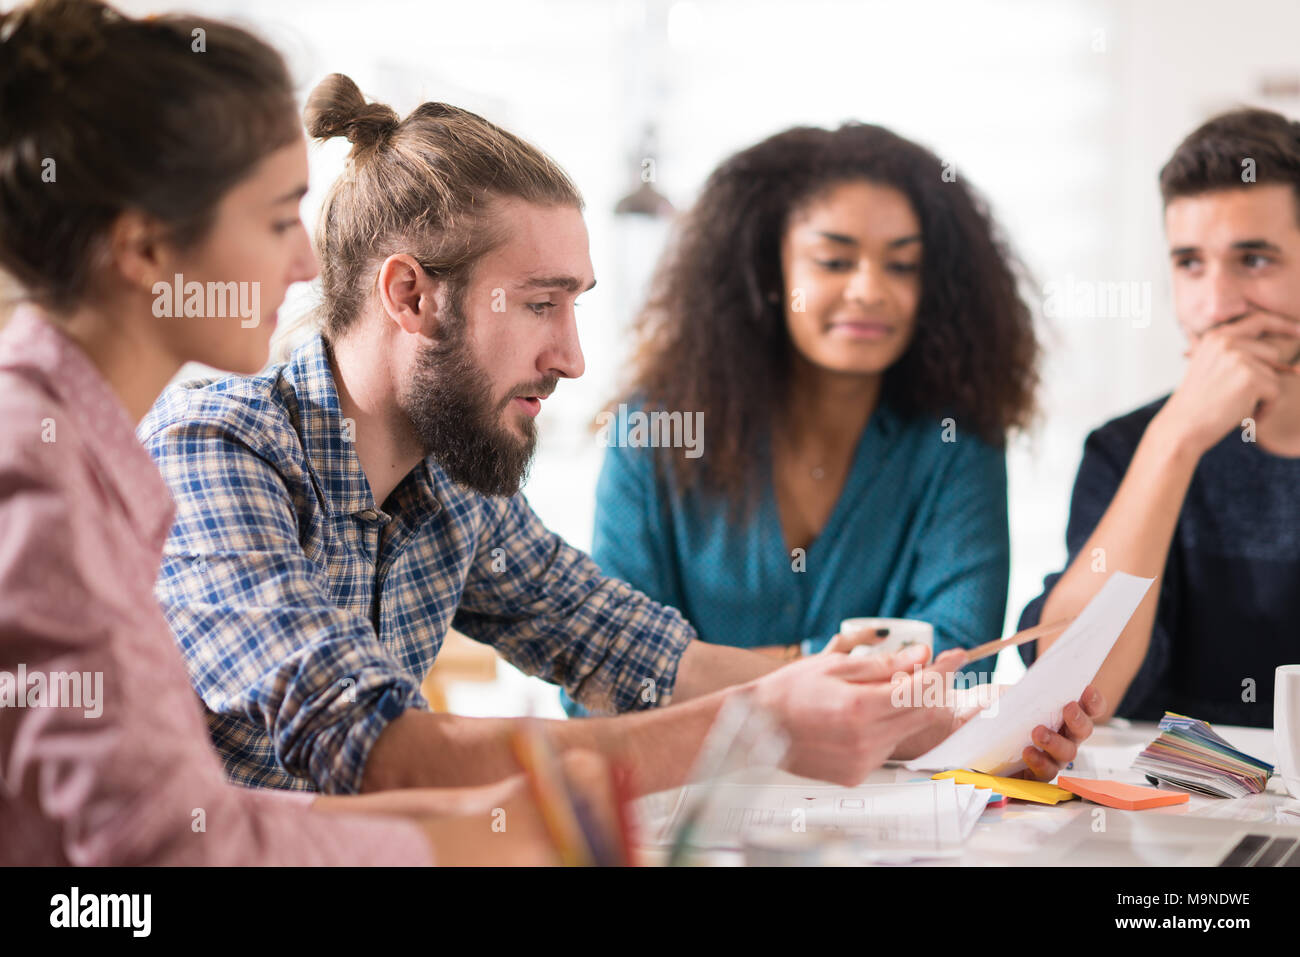 Young multiethnic creative team sharing ideas on a project  - Stock Image